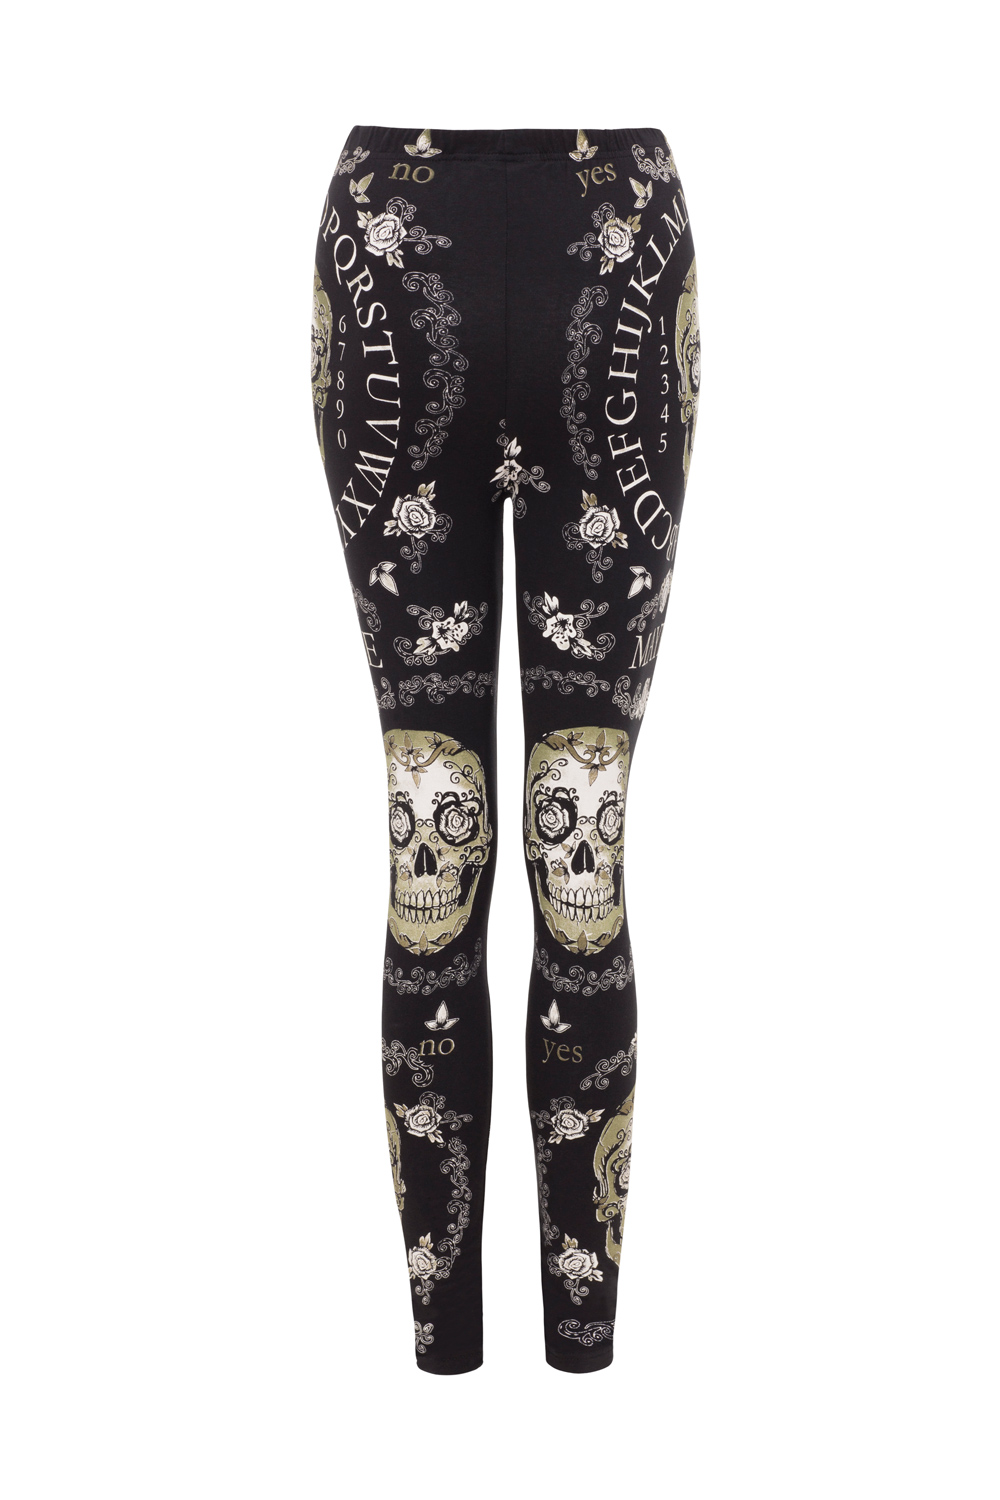 The Dark Seer Leggings